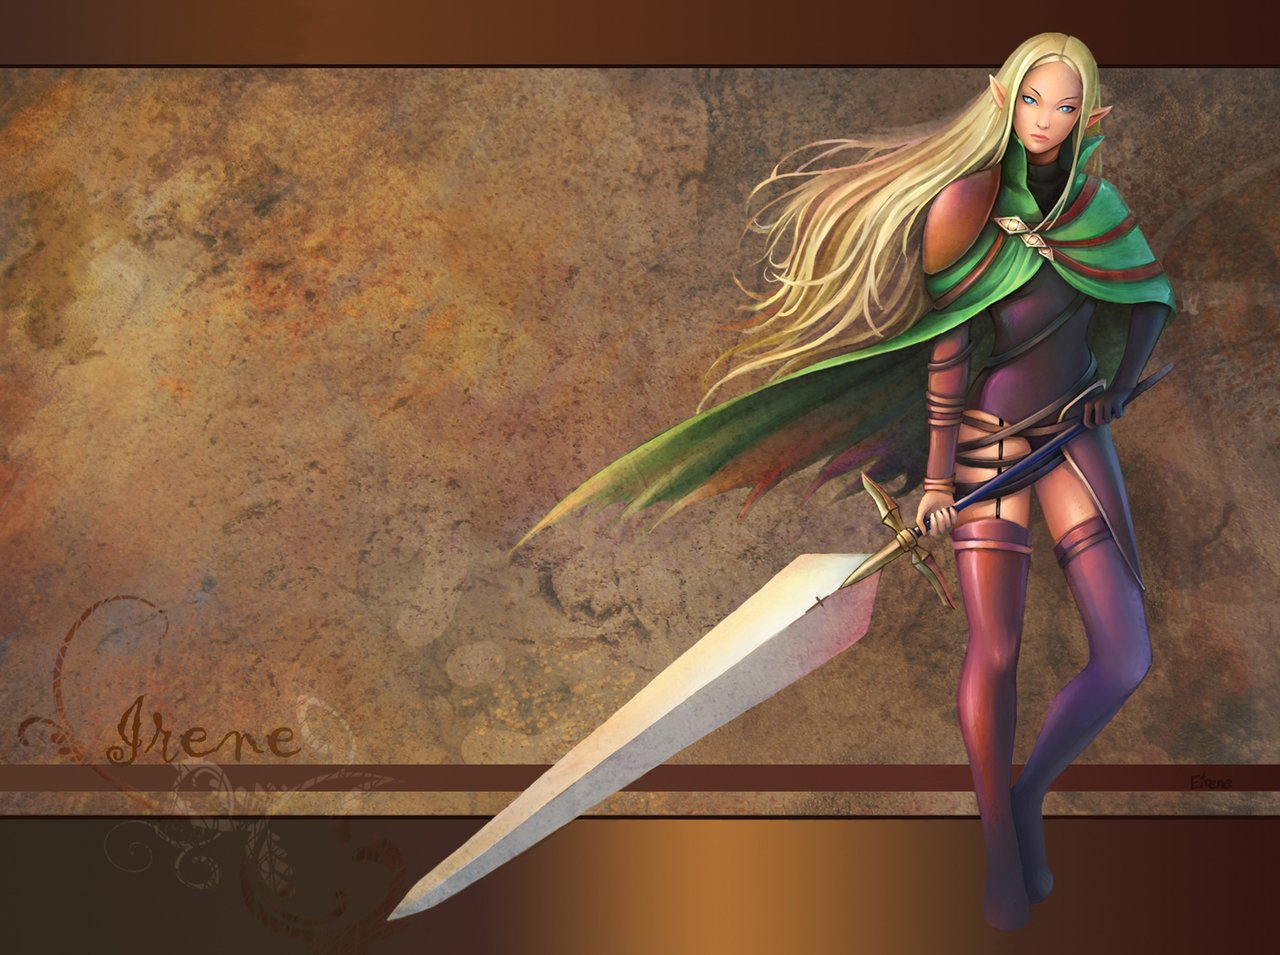 Claymore irene by eirene is